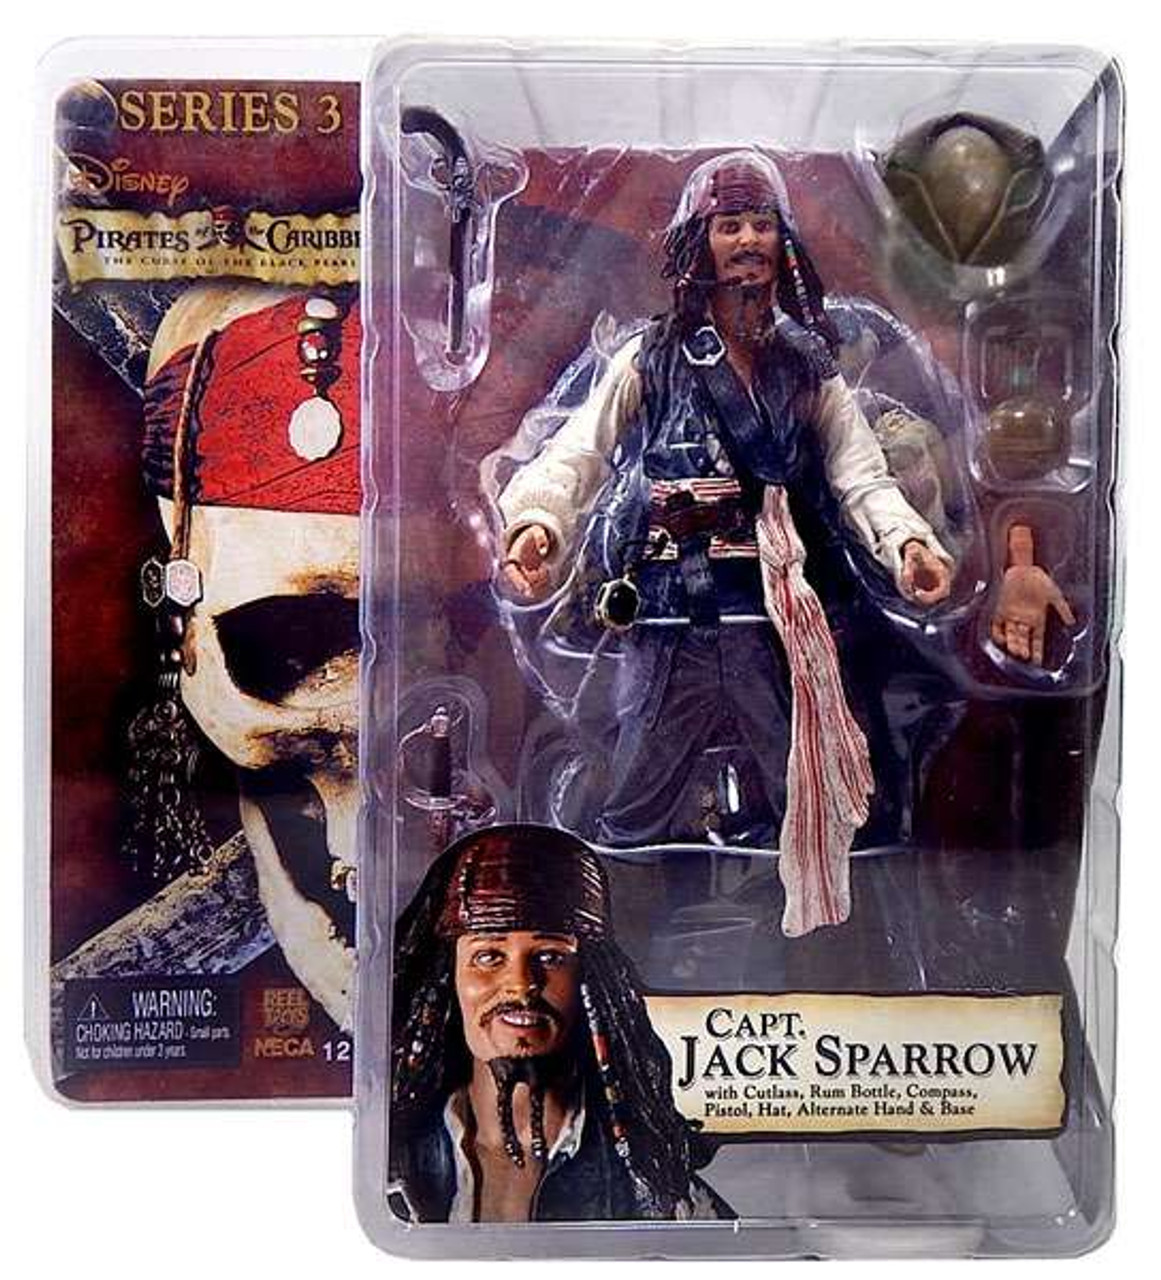 NECA Pirates of the Caribbean Curse of the Black Pearl Series 3 Captain Jack Sparrow Action Figure